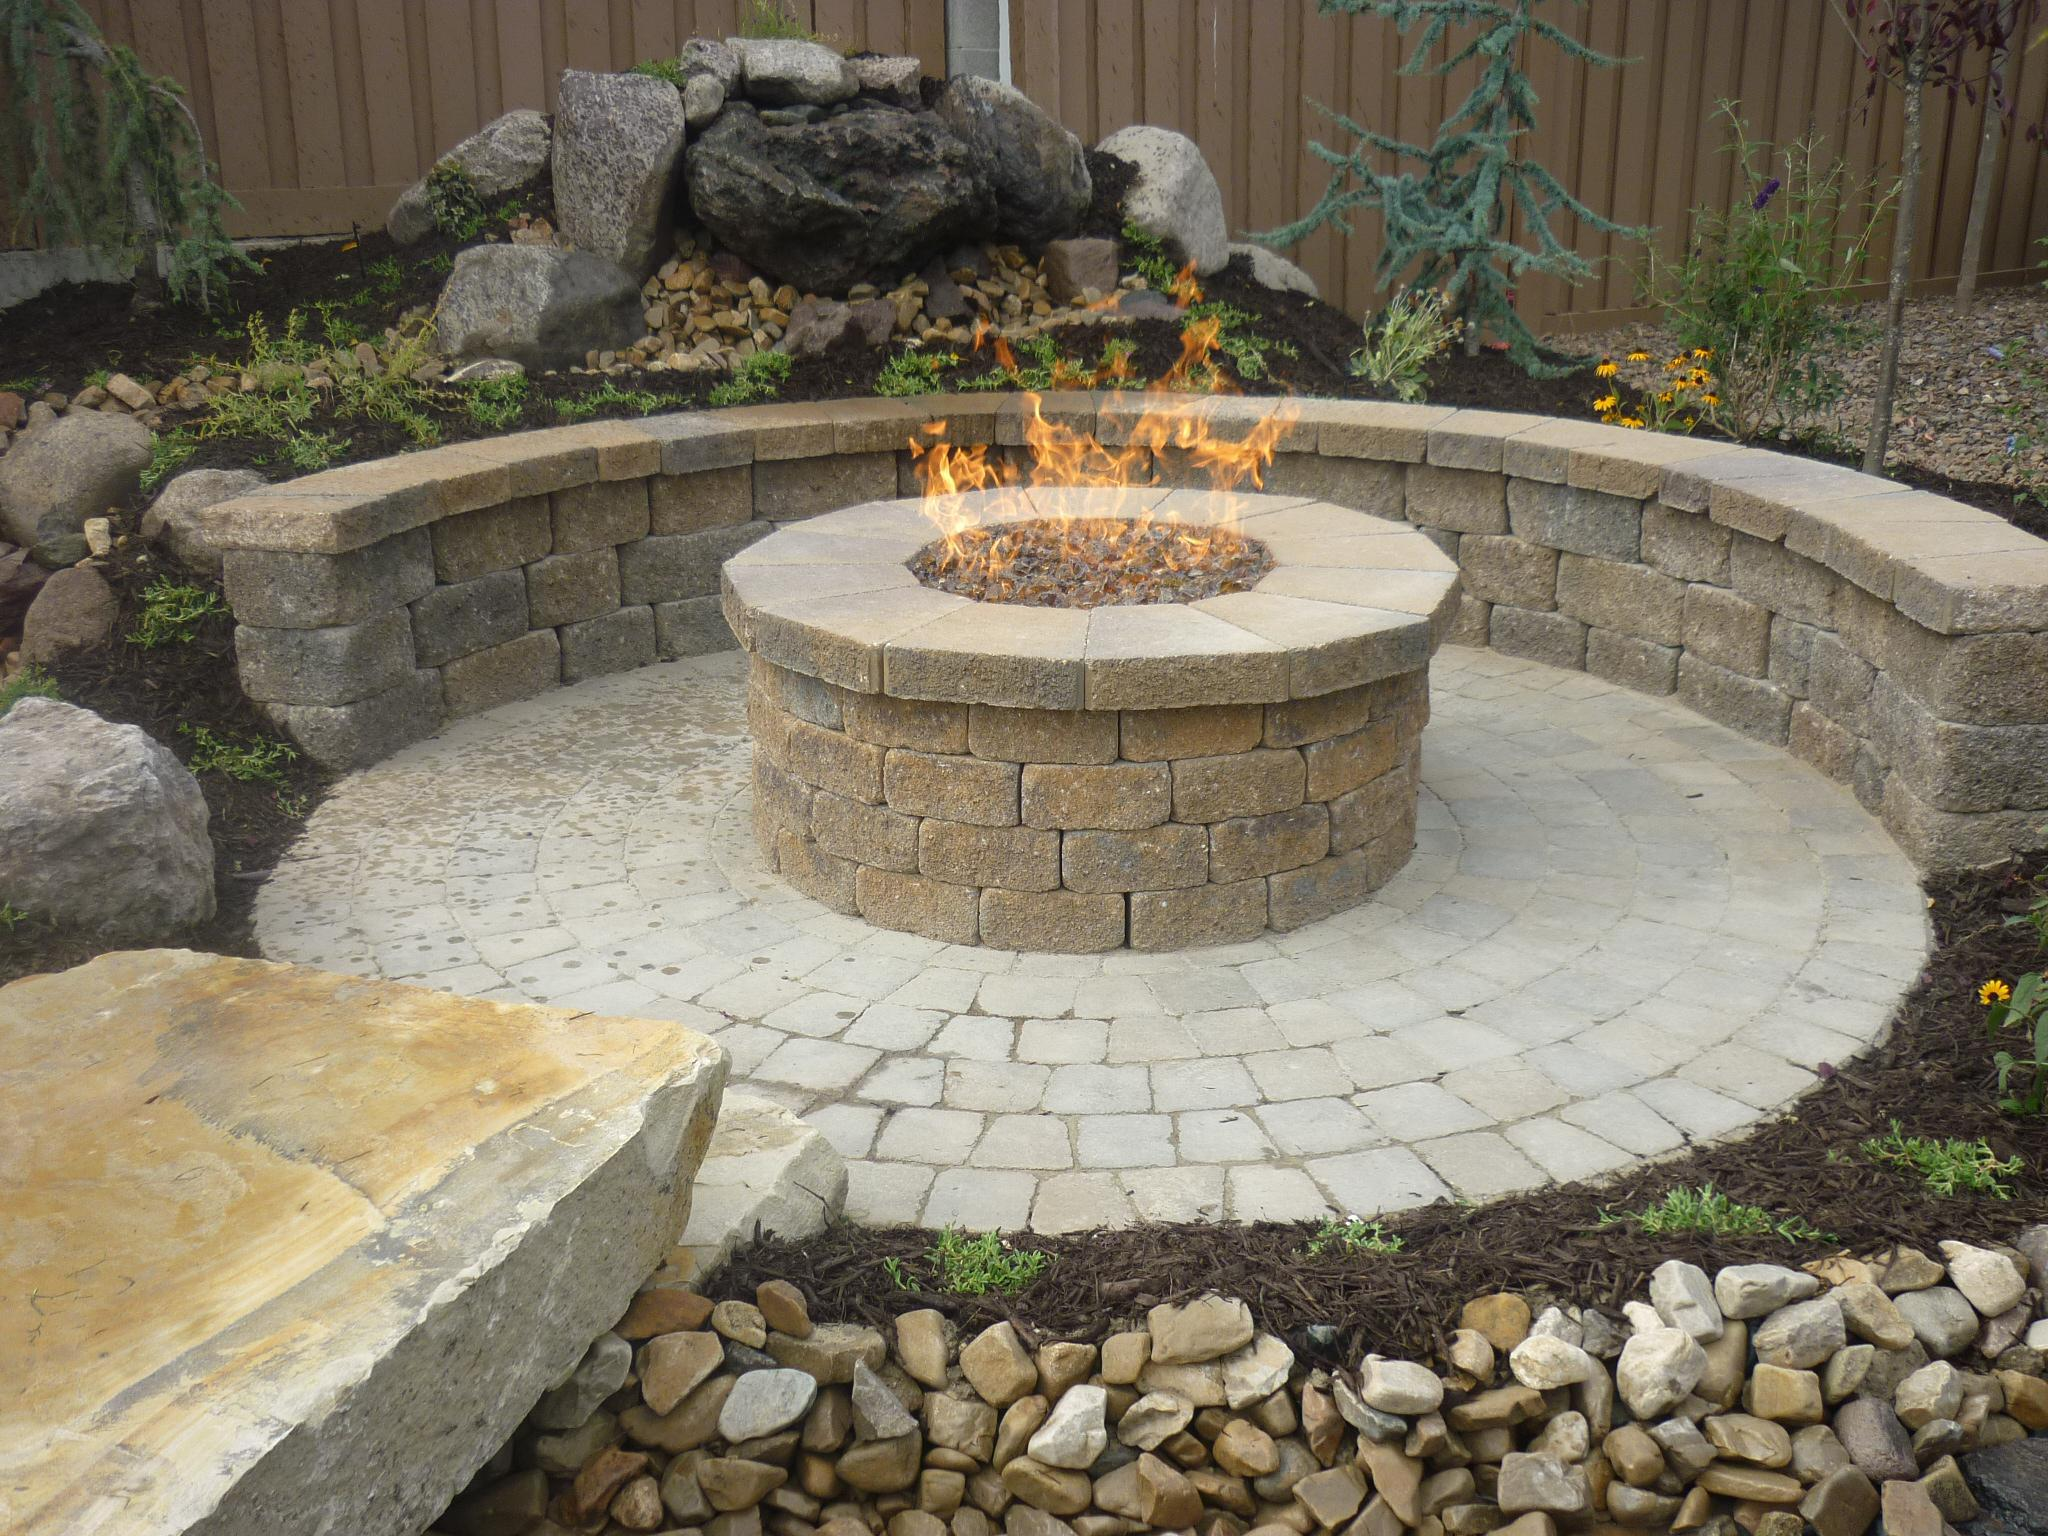 Backyard fire glass landscaping rocks for Garden designs with stone circles